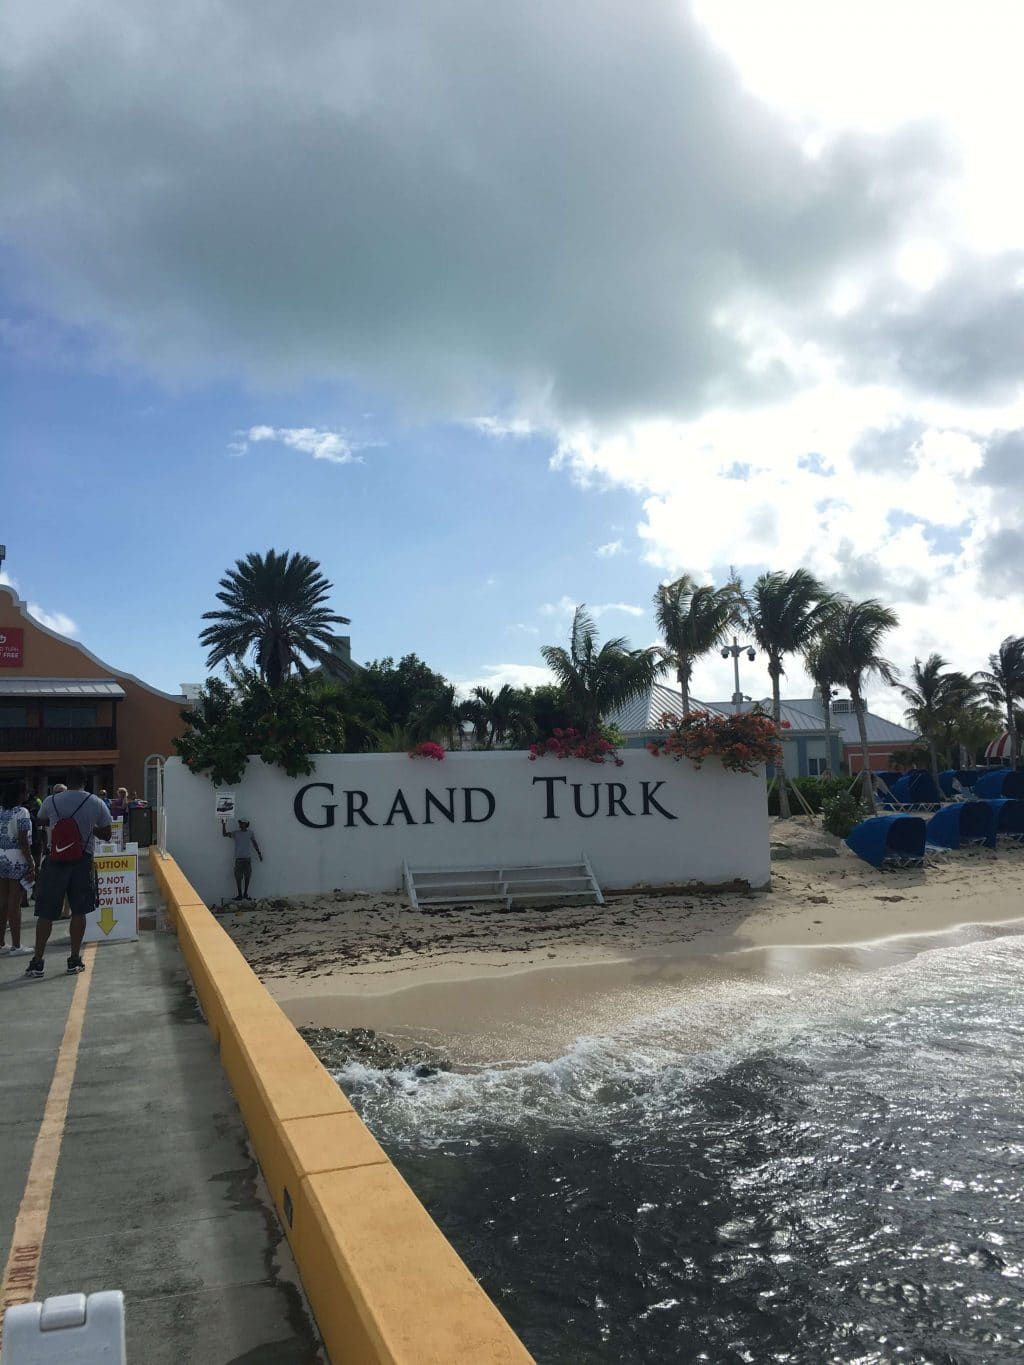 What to do in Grand Turk, Family favorite cruise ports, Stilettos and Diapers, Carnival Horizon